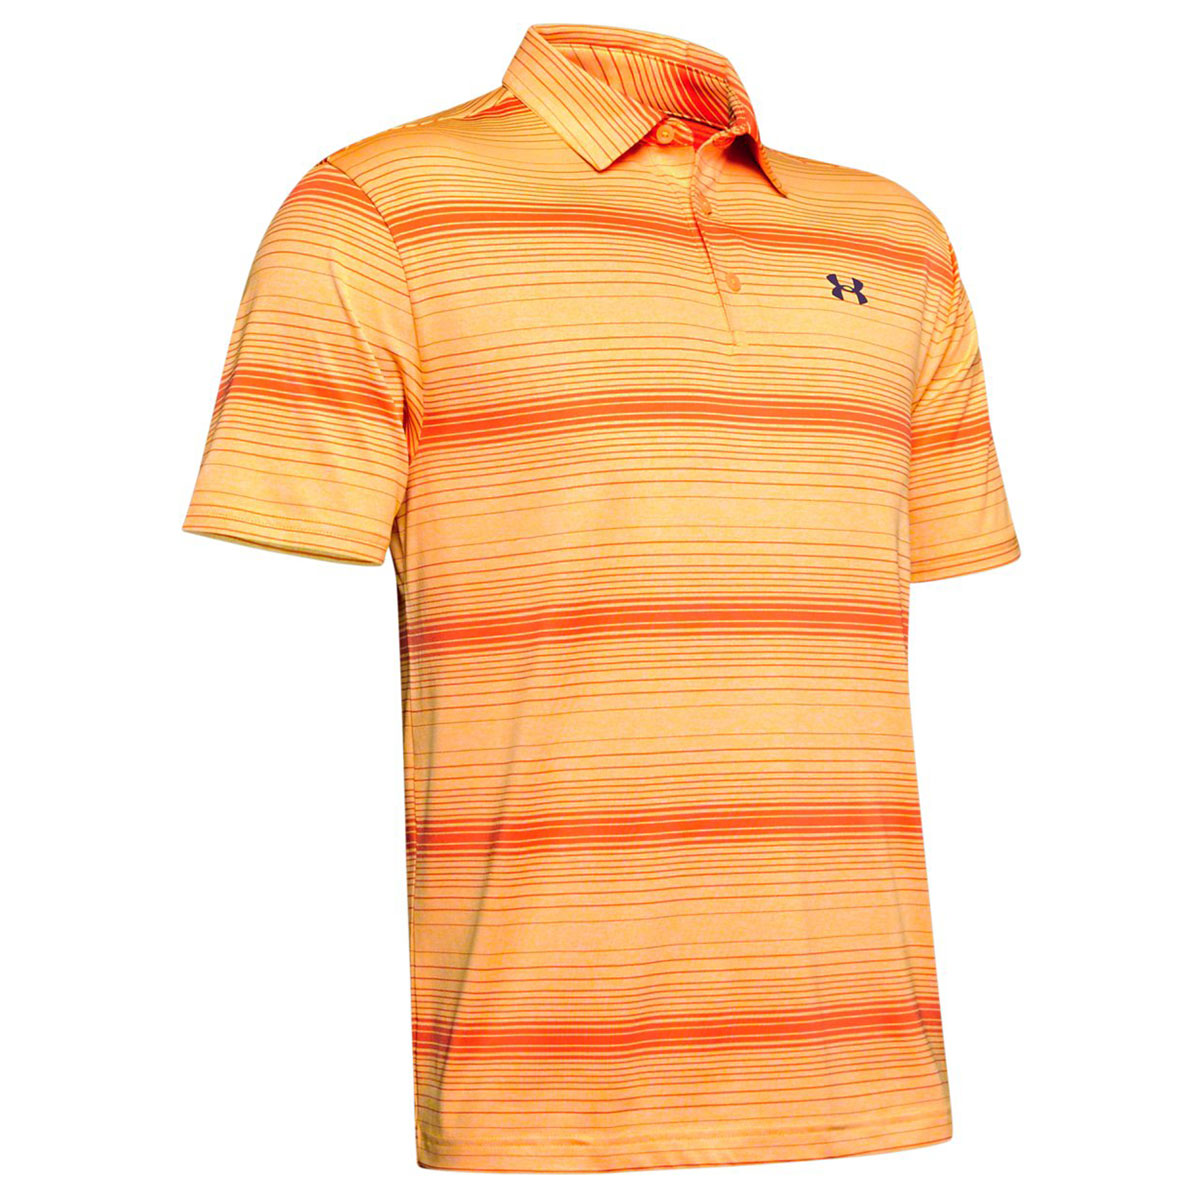 Under-Armour-Mens-2019-Playoff-Polo-2-0-Breathable-Light-Stretch-Polo-Shirt thumbnail 82